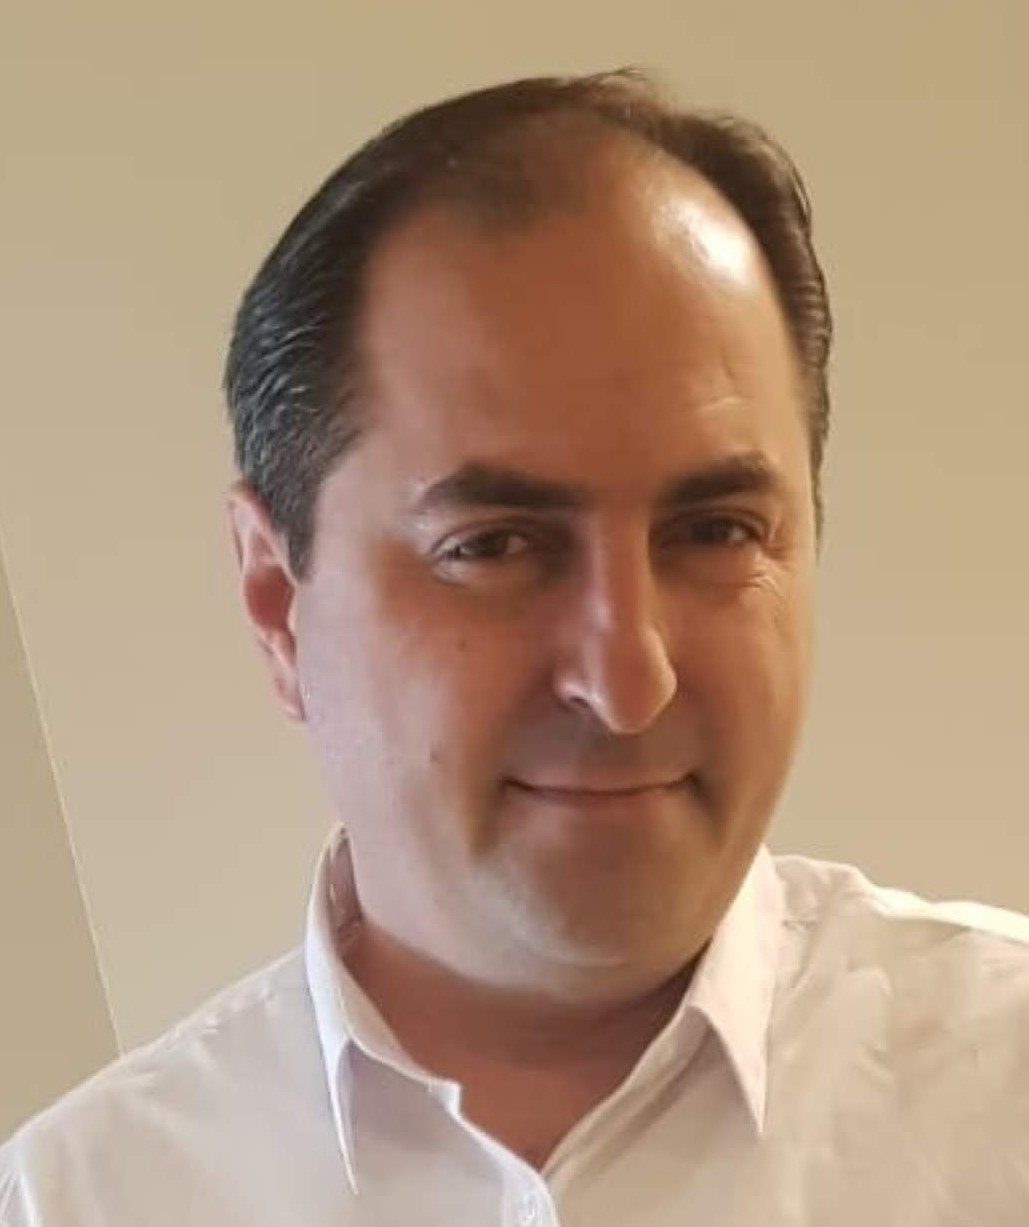 Yossi Batashvili Global Technologies Manager at Adama Agricultural solution LTD